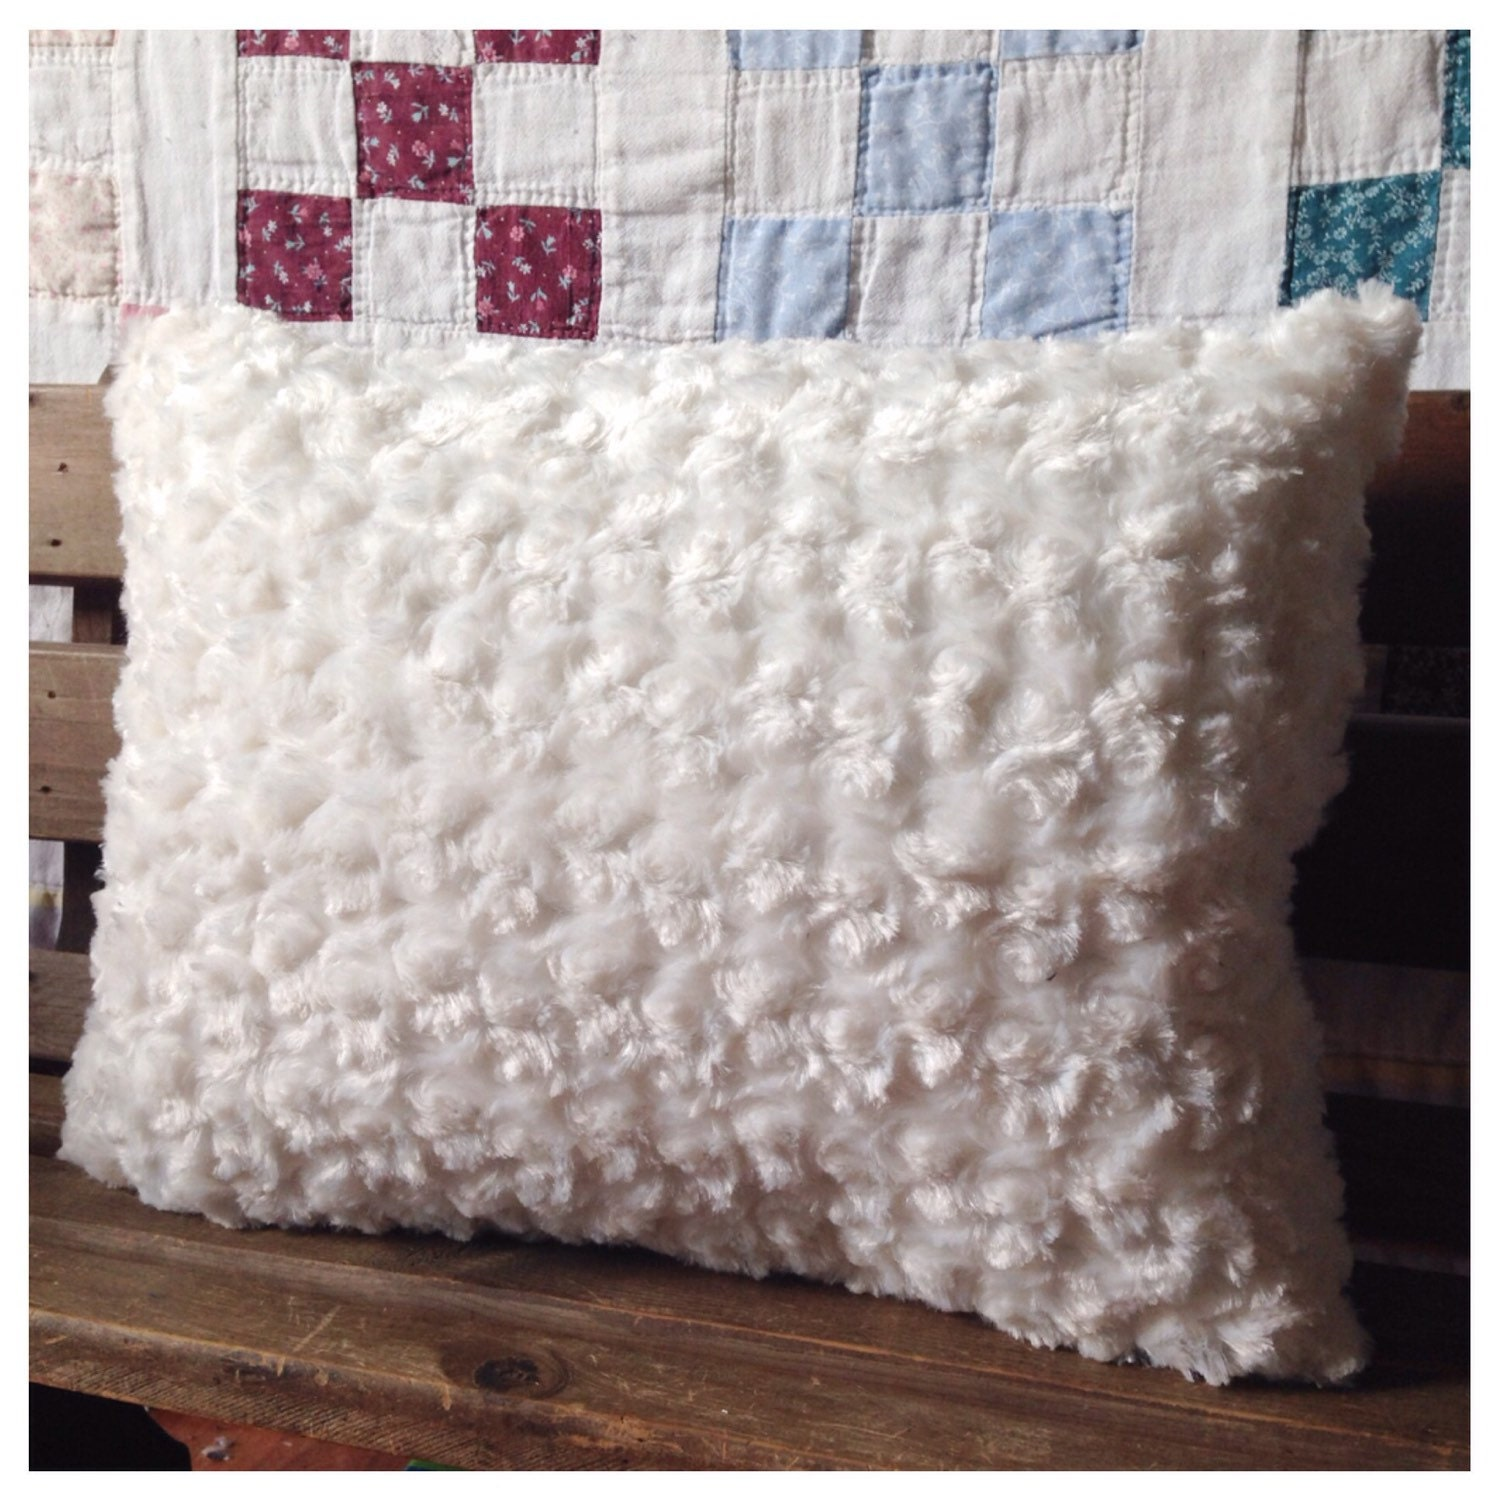 How To Make Shabby Chic Throw Pillows : Shabby Chic Throw Pillow Ivory and Cream Rosette and Ribbon